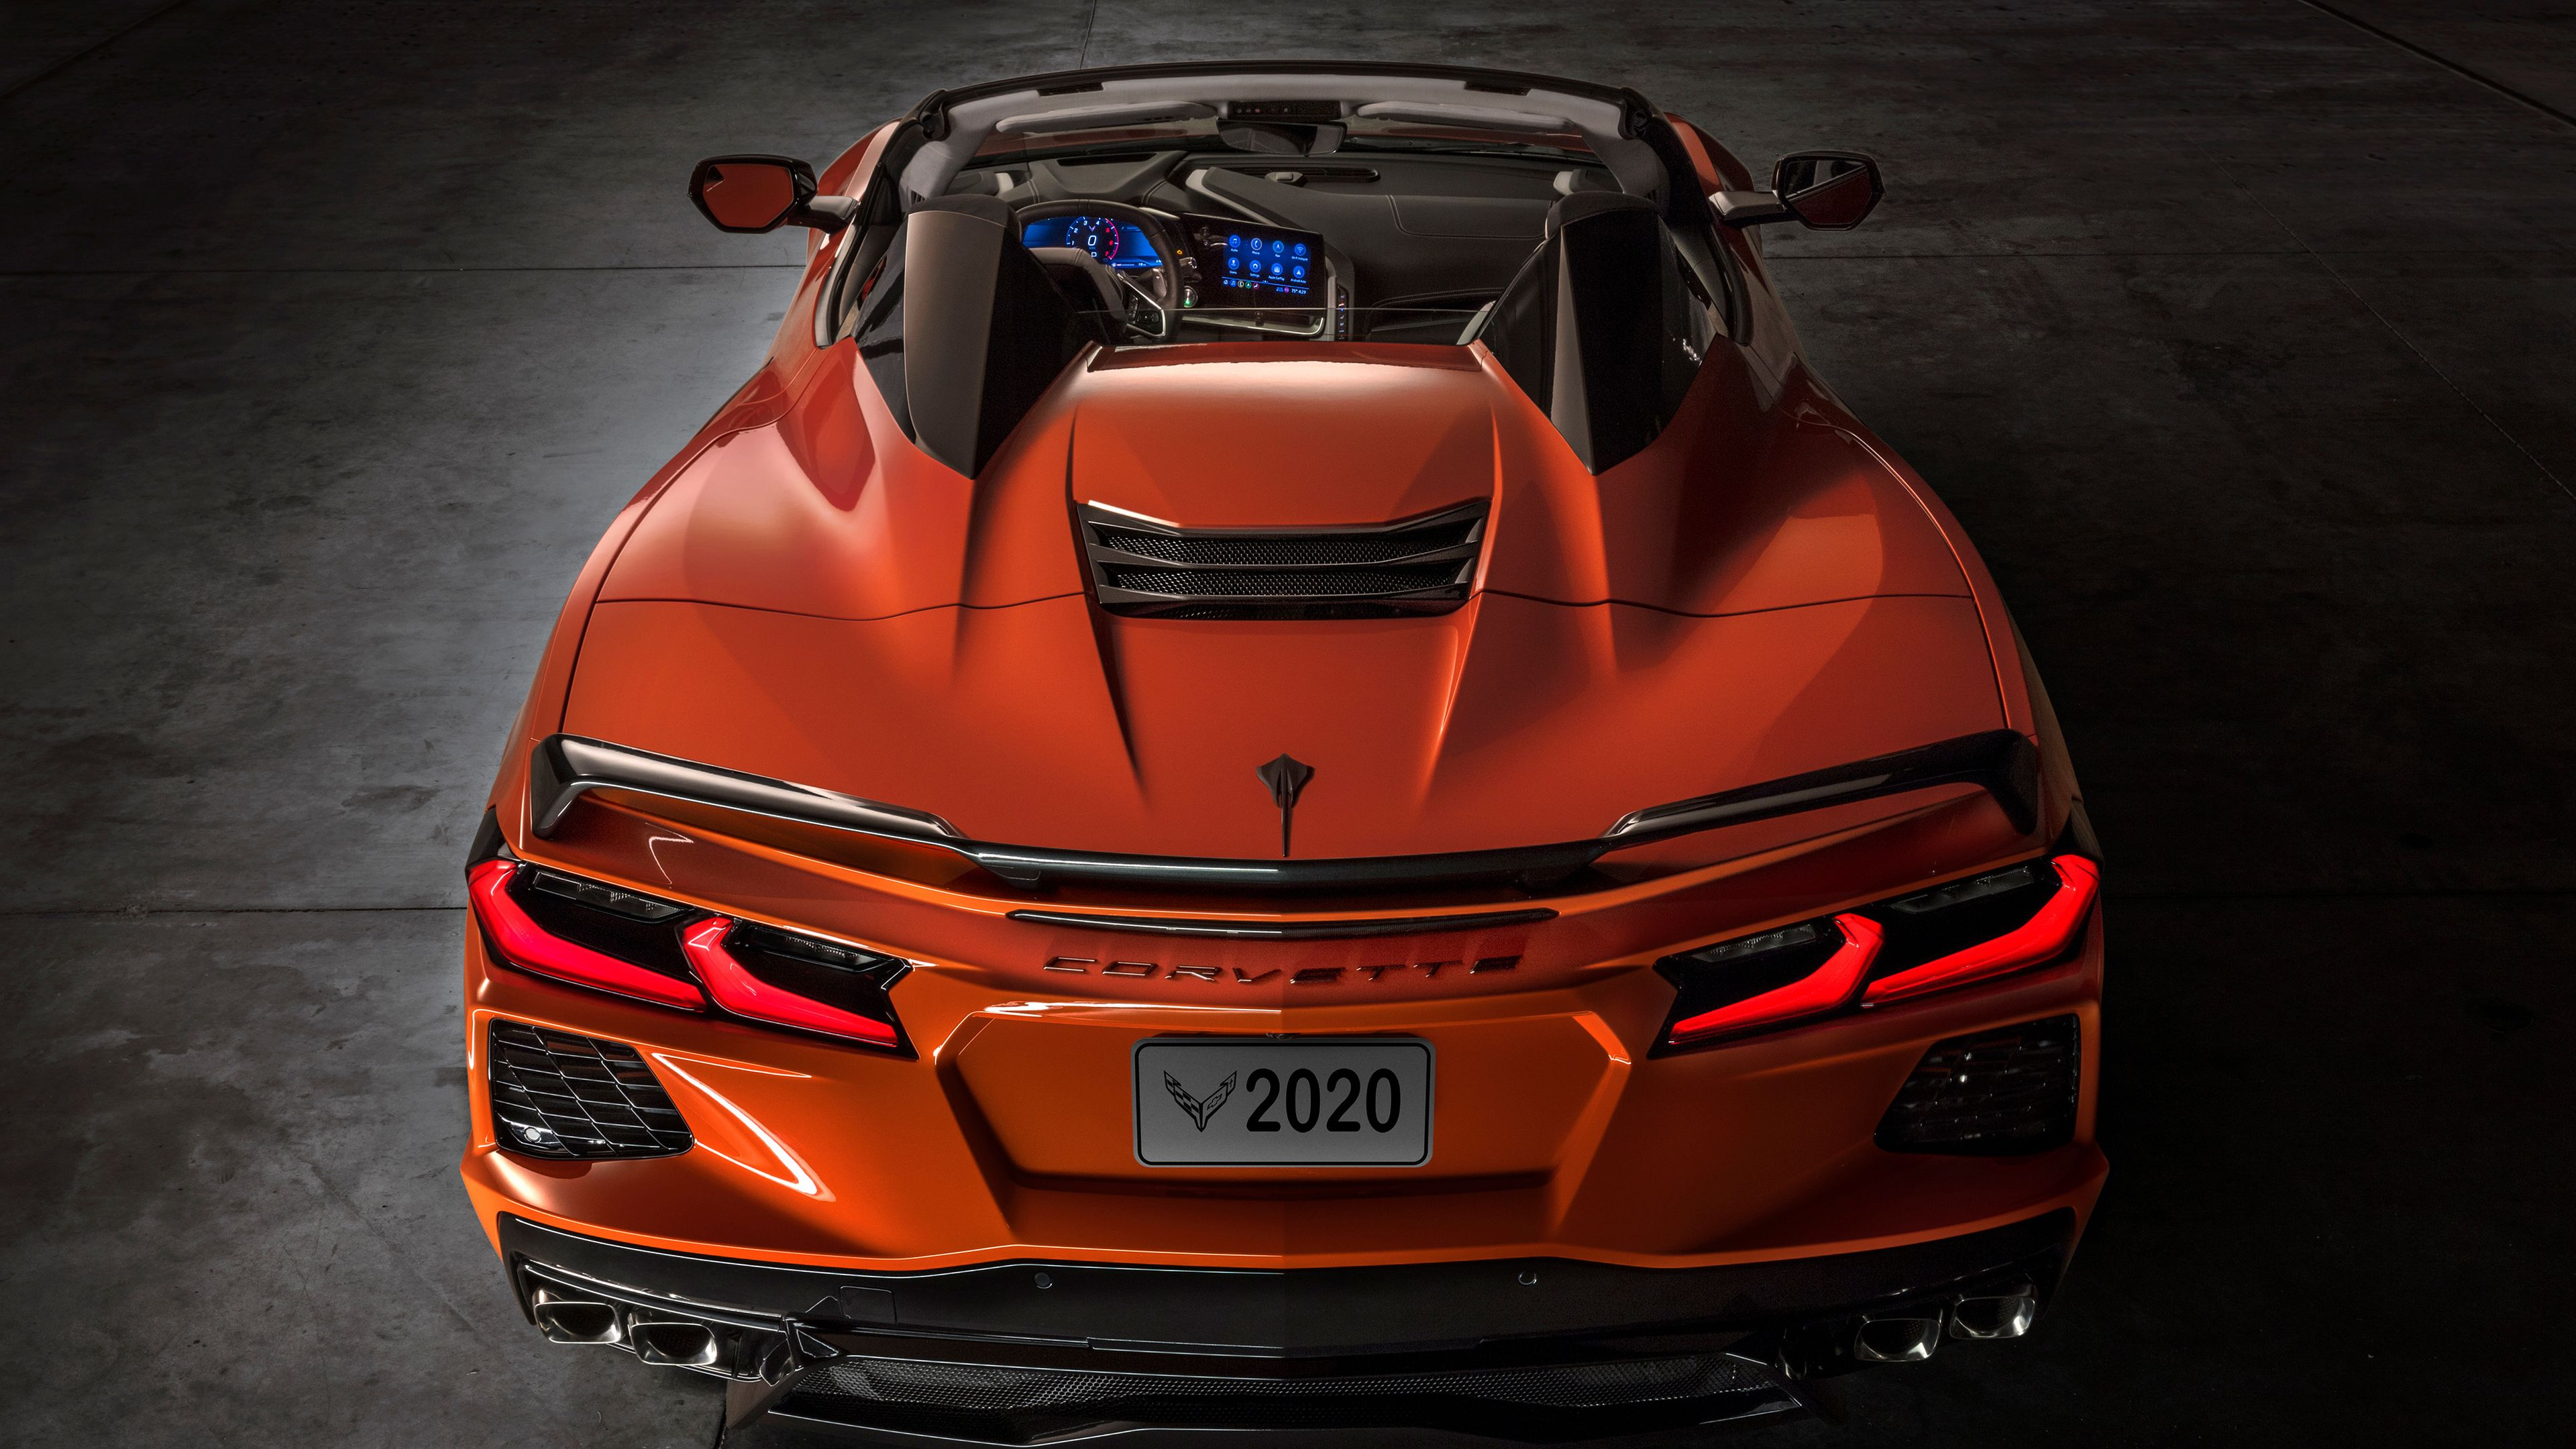 2020 Chevrolet Corvette C8 Stingray Convertible Hd Wallpapers Chevrolet Wallpapers Chevrolet Co Chevrolet Corvette Chevrolet Corvette Stingray Chevy Corvette